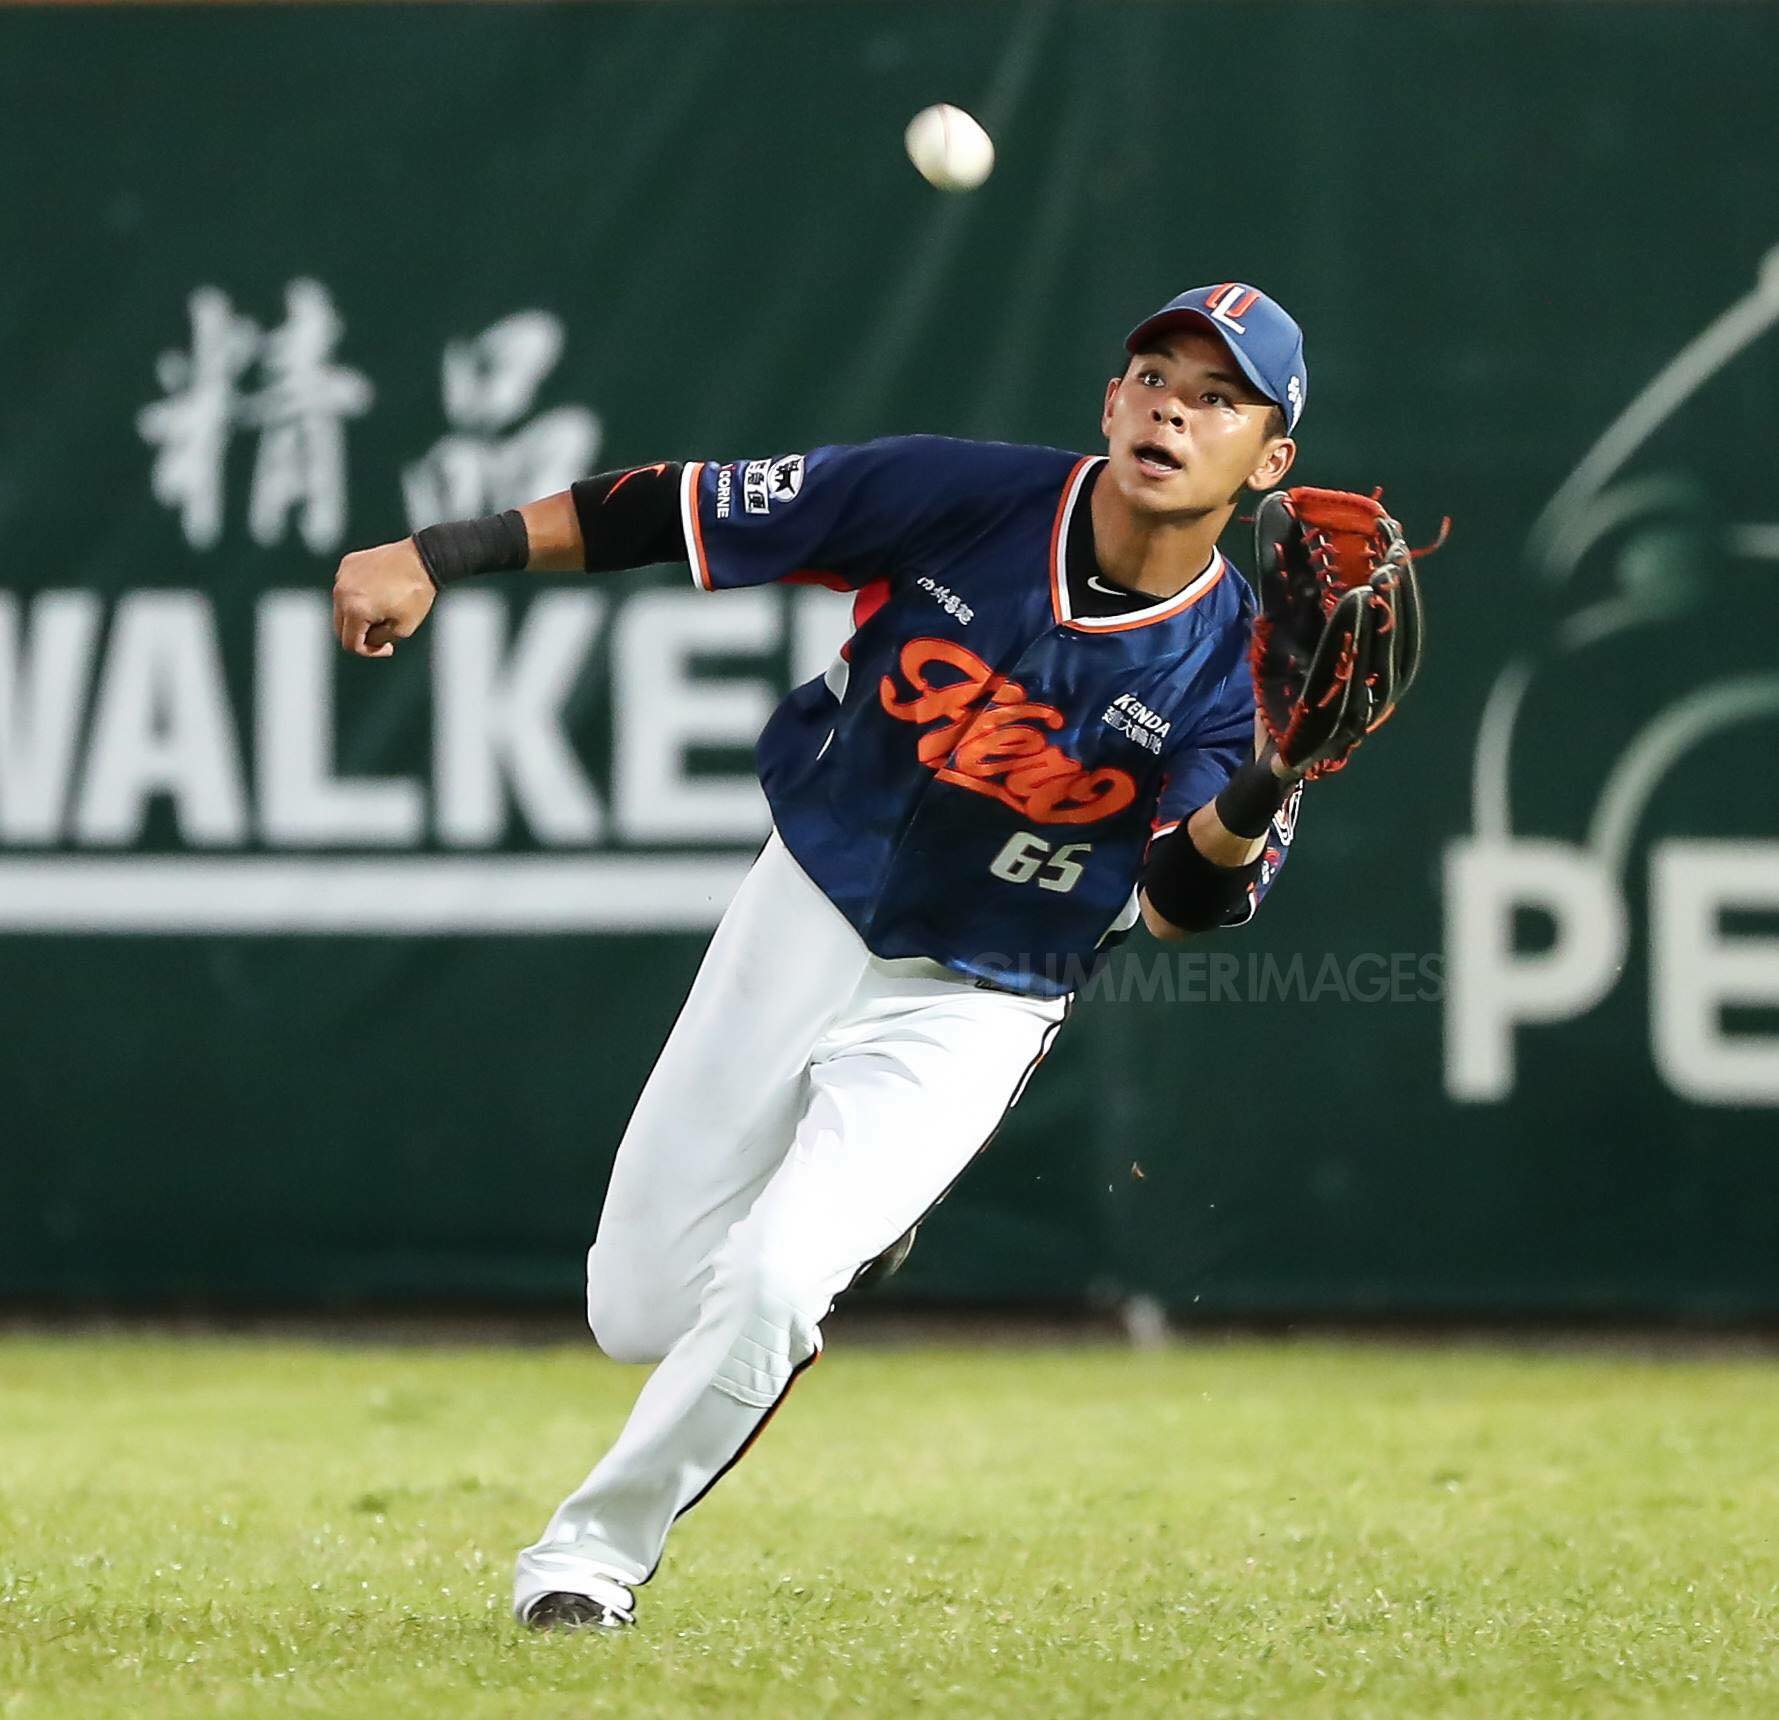 Chen Yu Chen Chung Yu Cover Page Photos From Glimmer Film Cpbl Stats